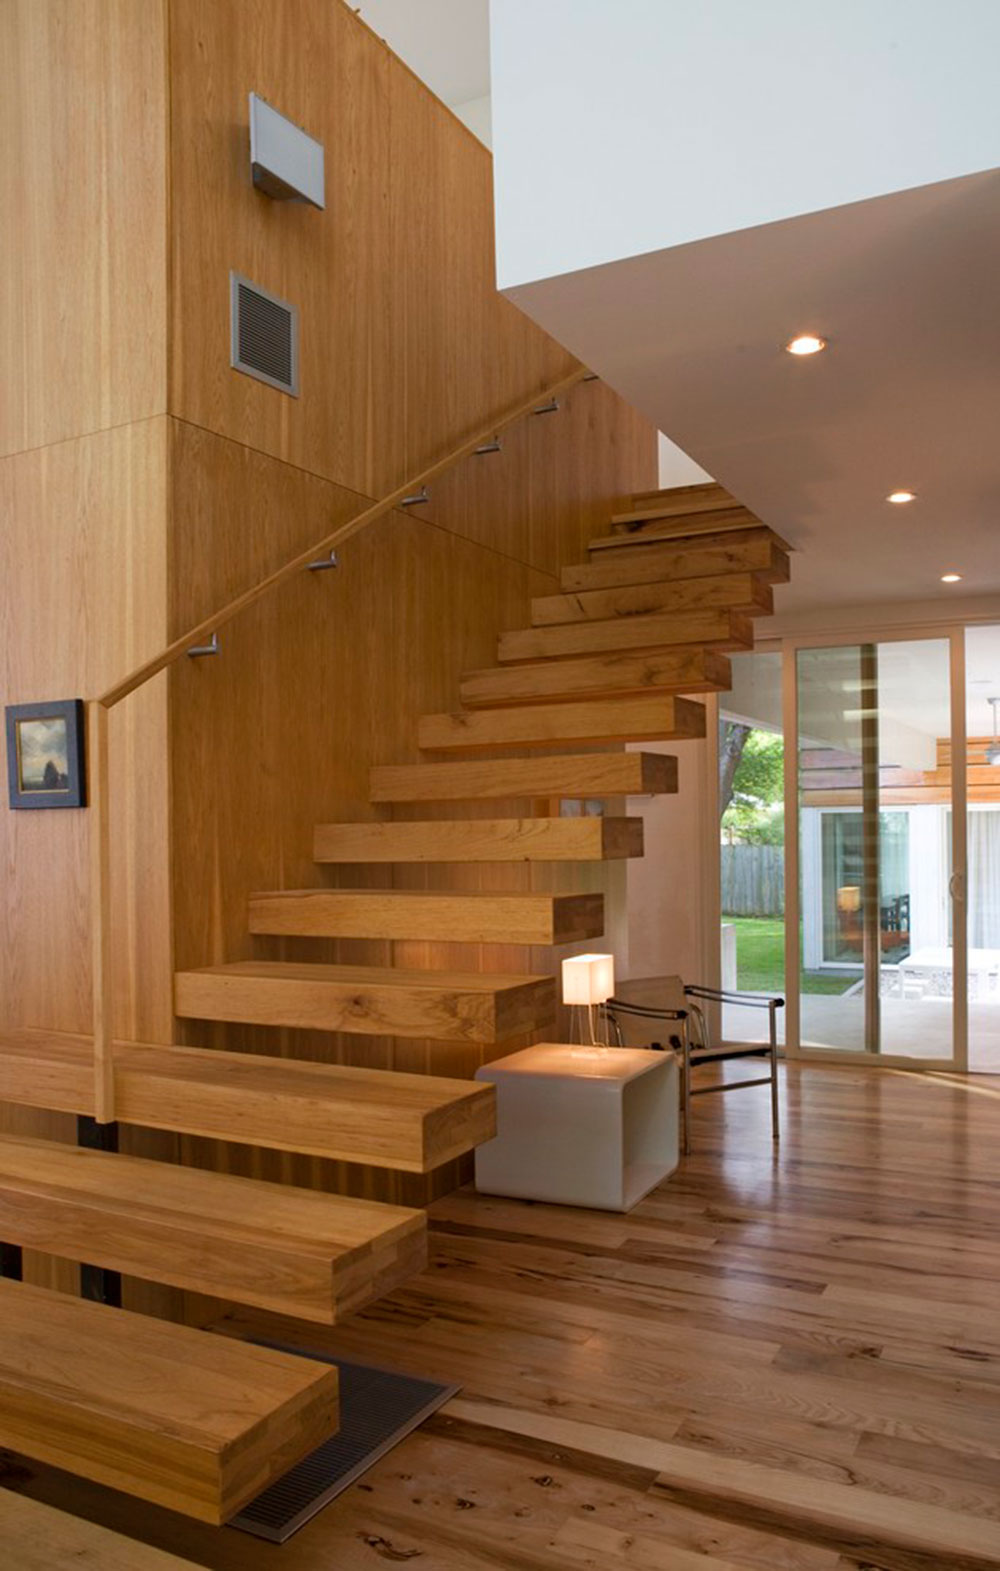 Modern and exquisite floating staircase5 Modern and exquisite floating staircase designs